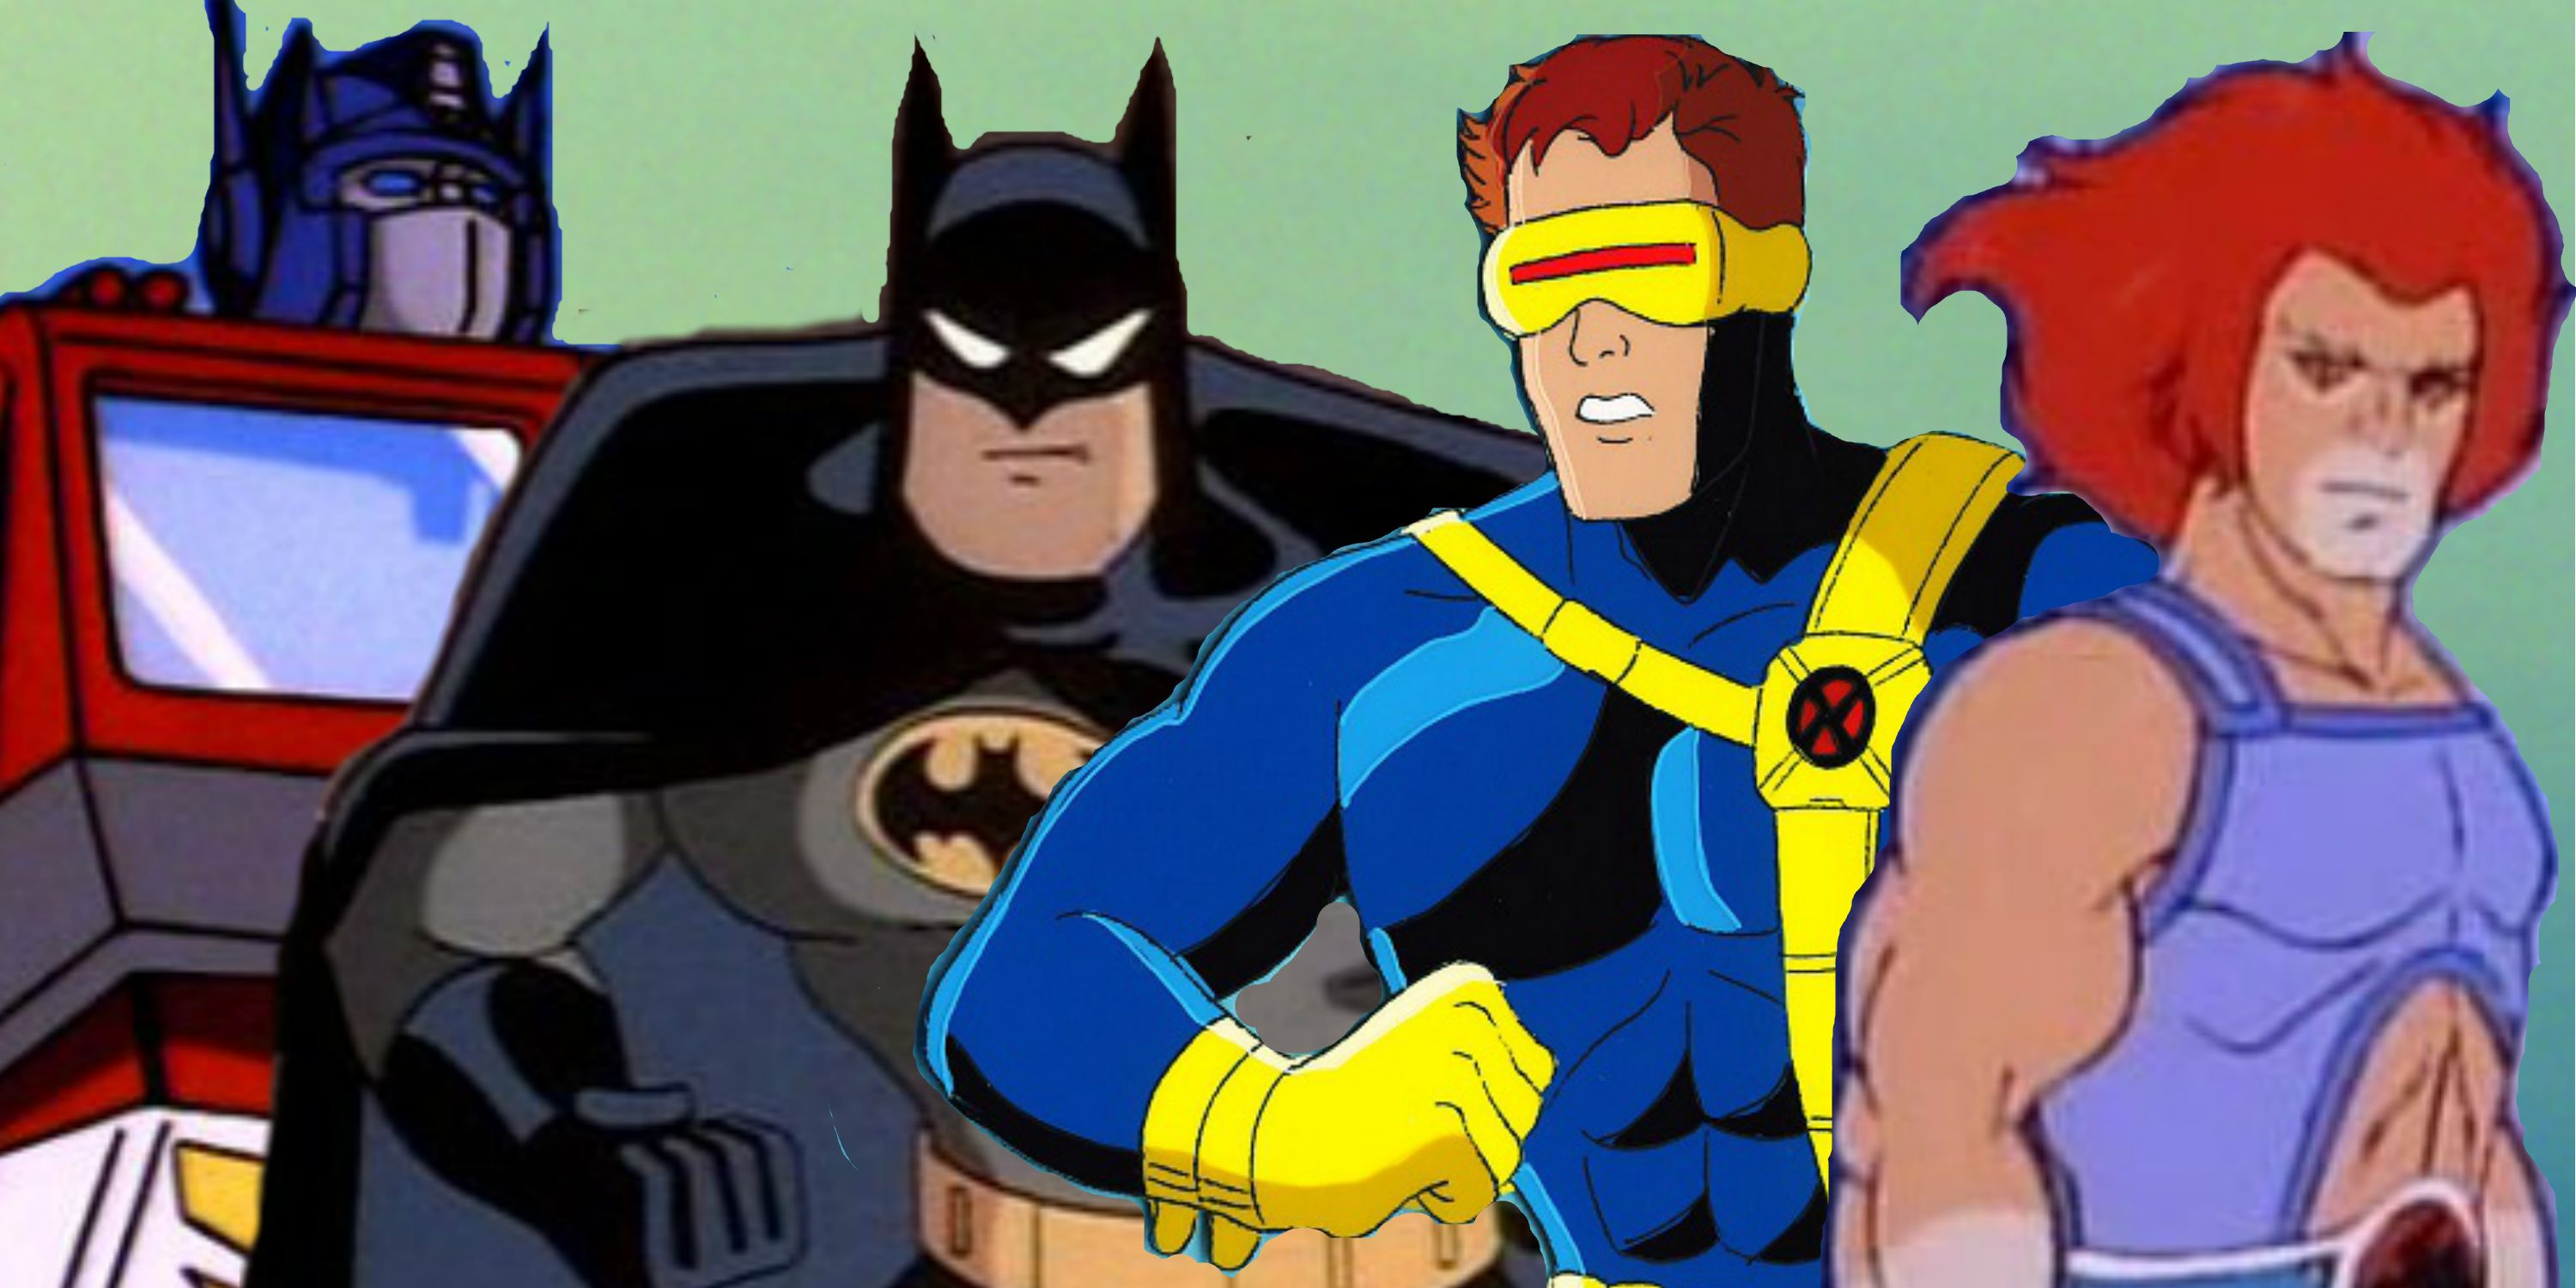 Transformers, Batman: The Animated Series, X-Men: The Series, Thunder-Cats